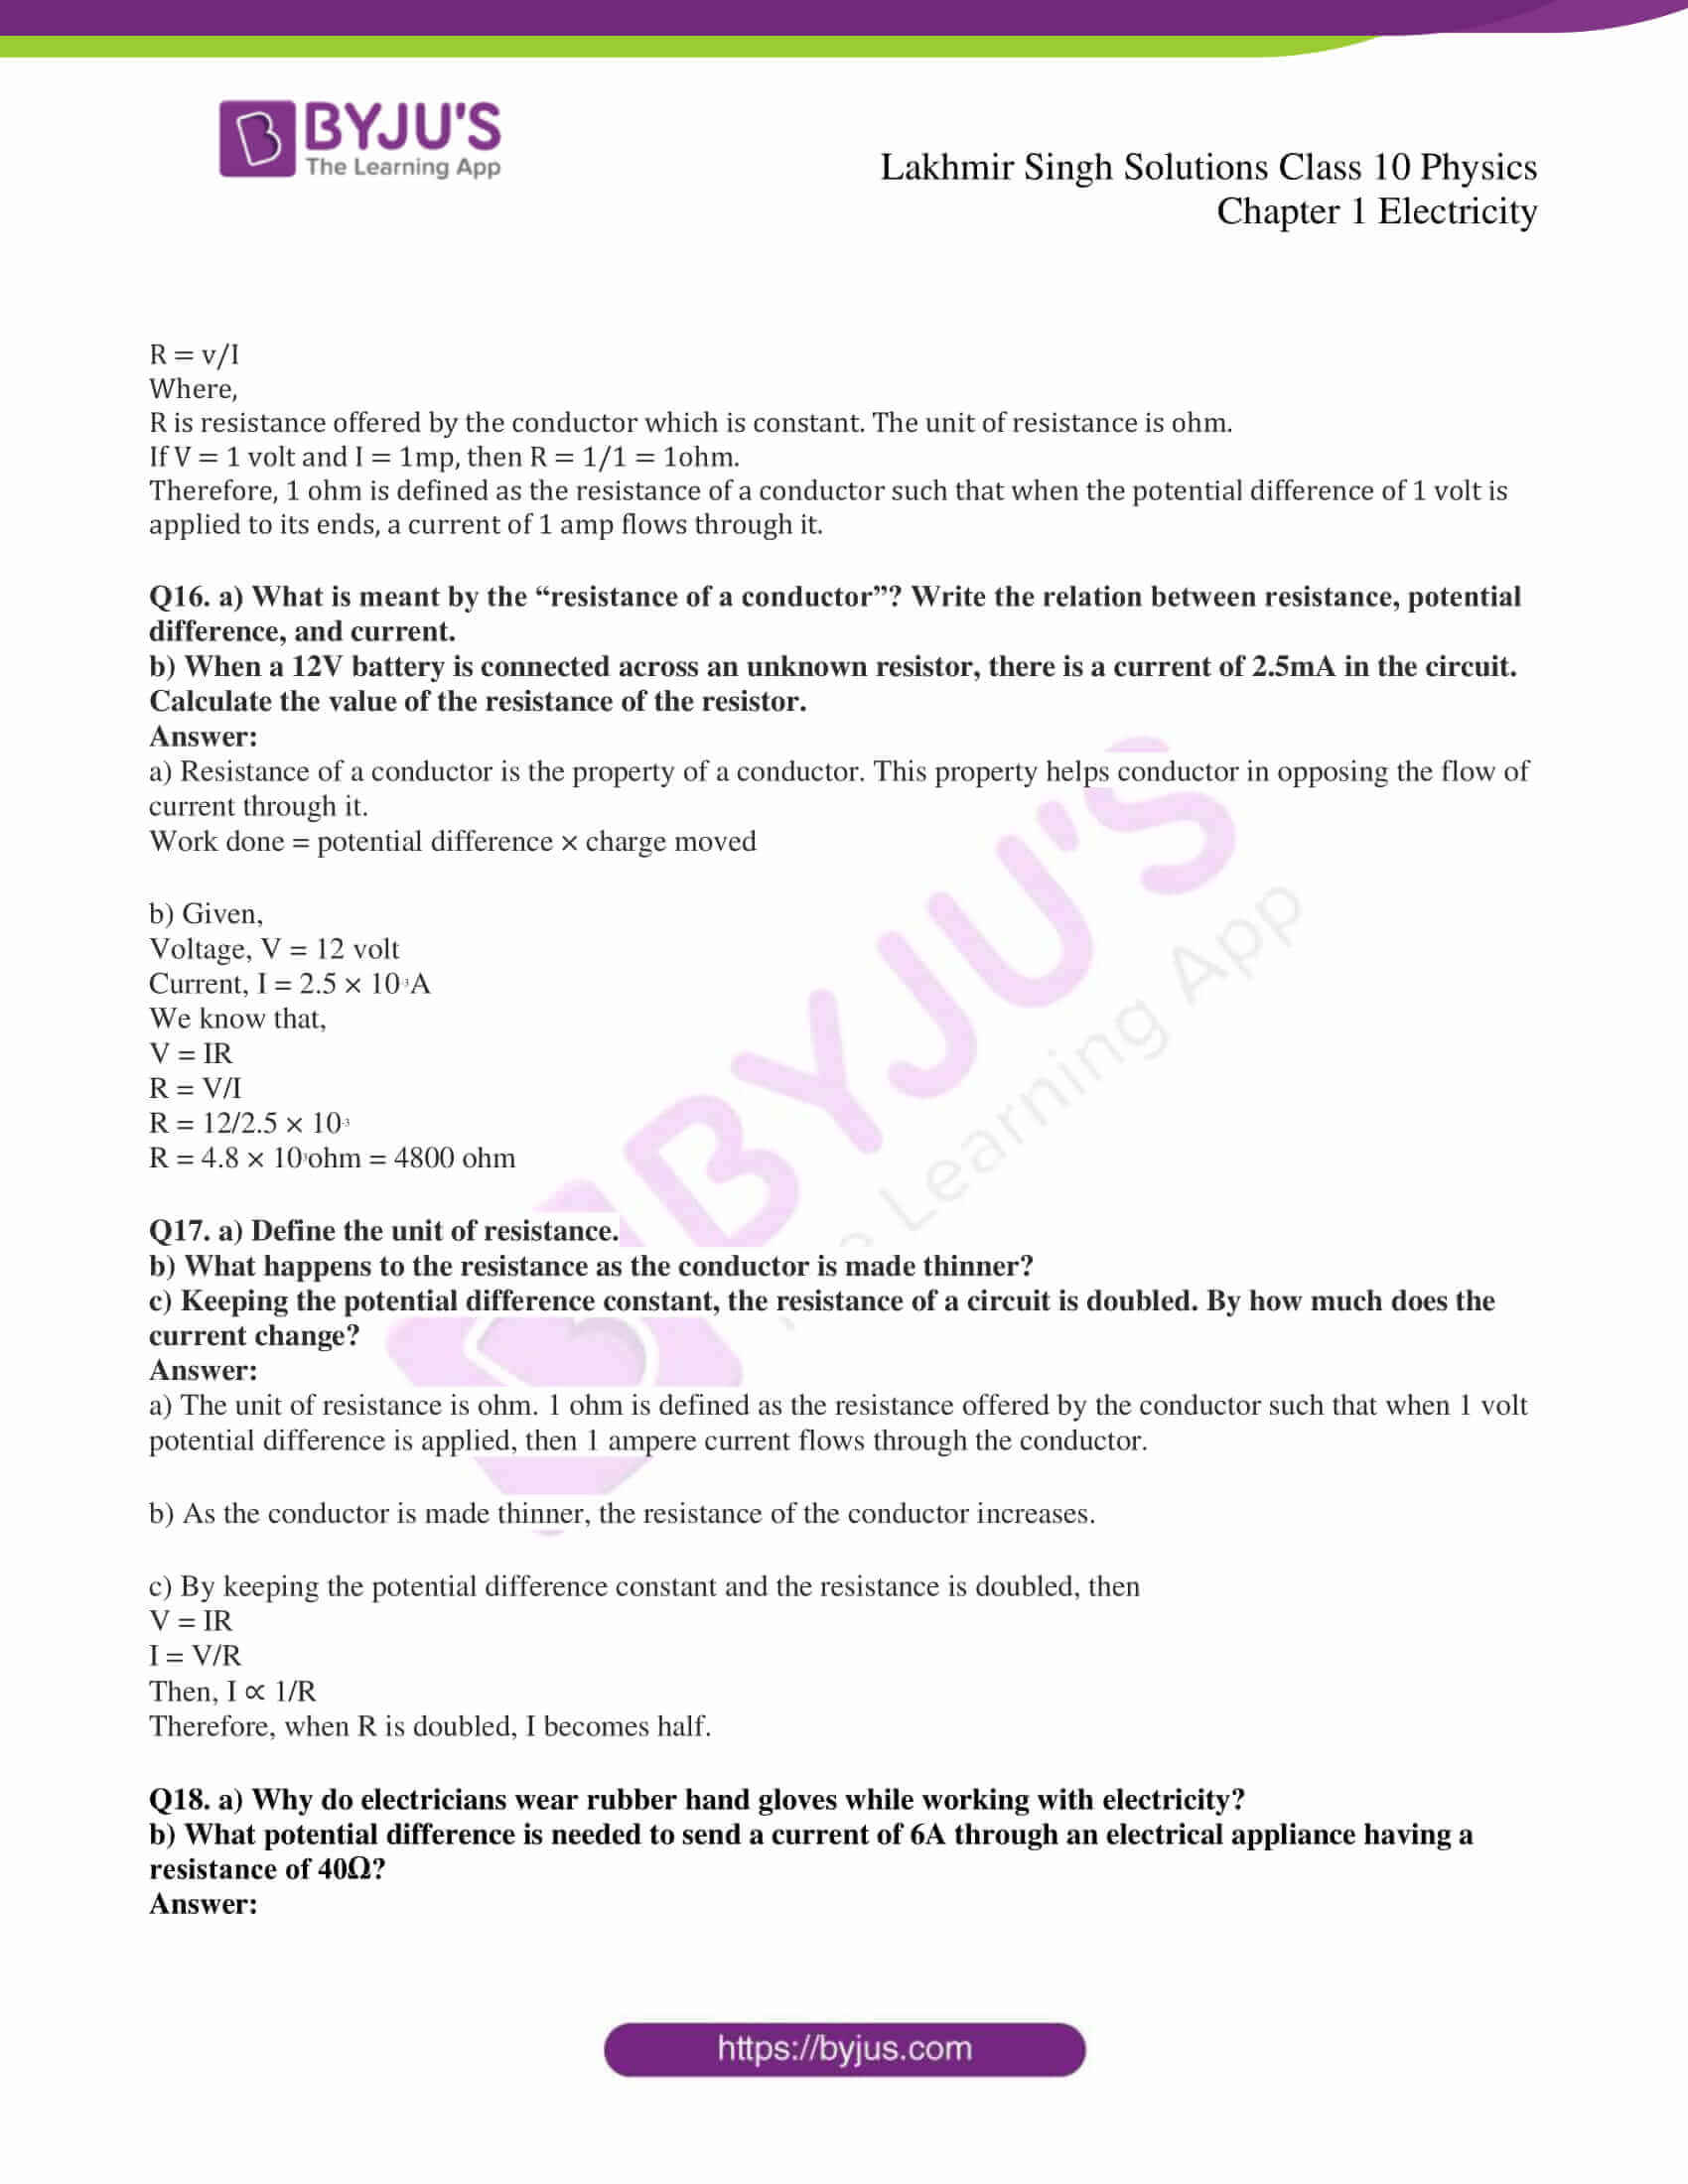 lakhmir singh solutions class 10 physics chapter 1 21